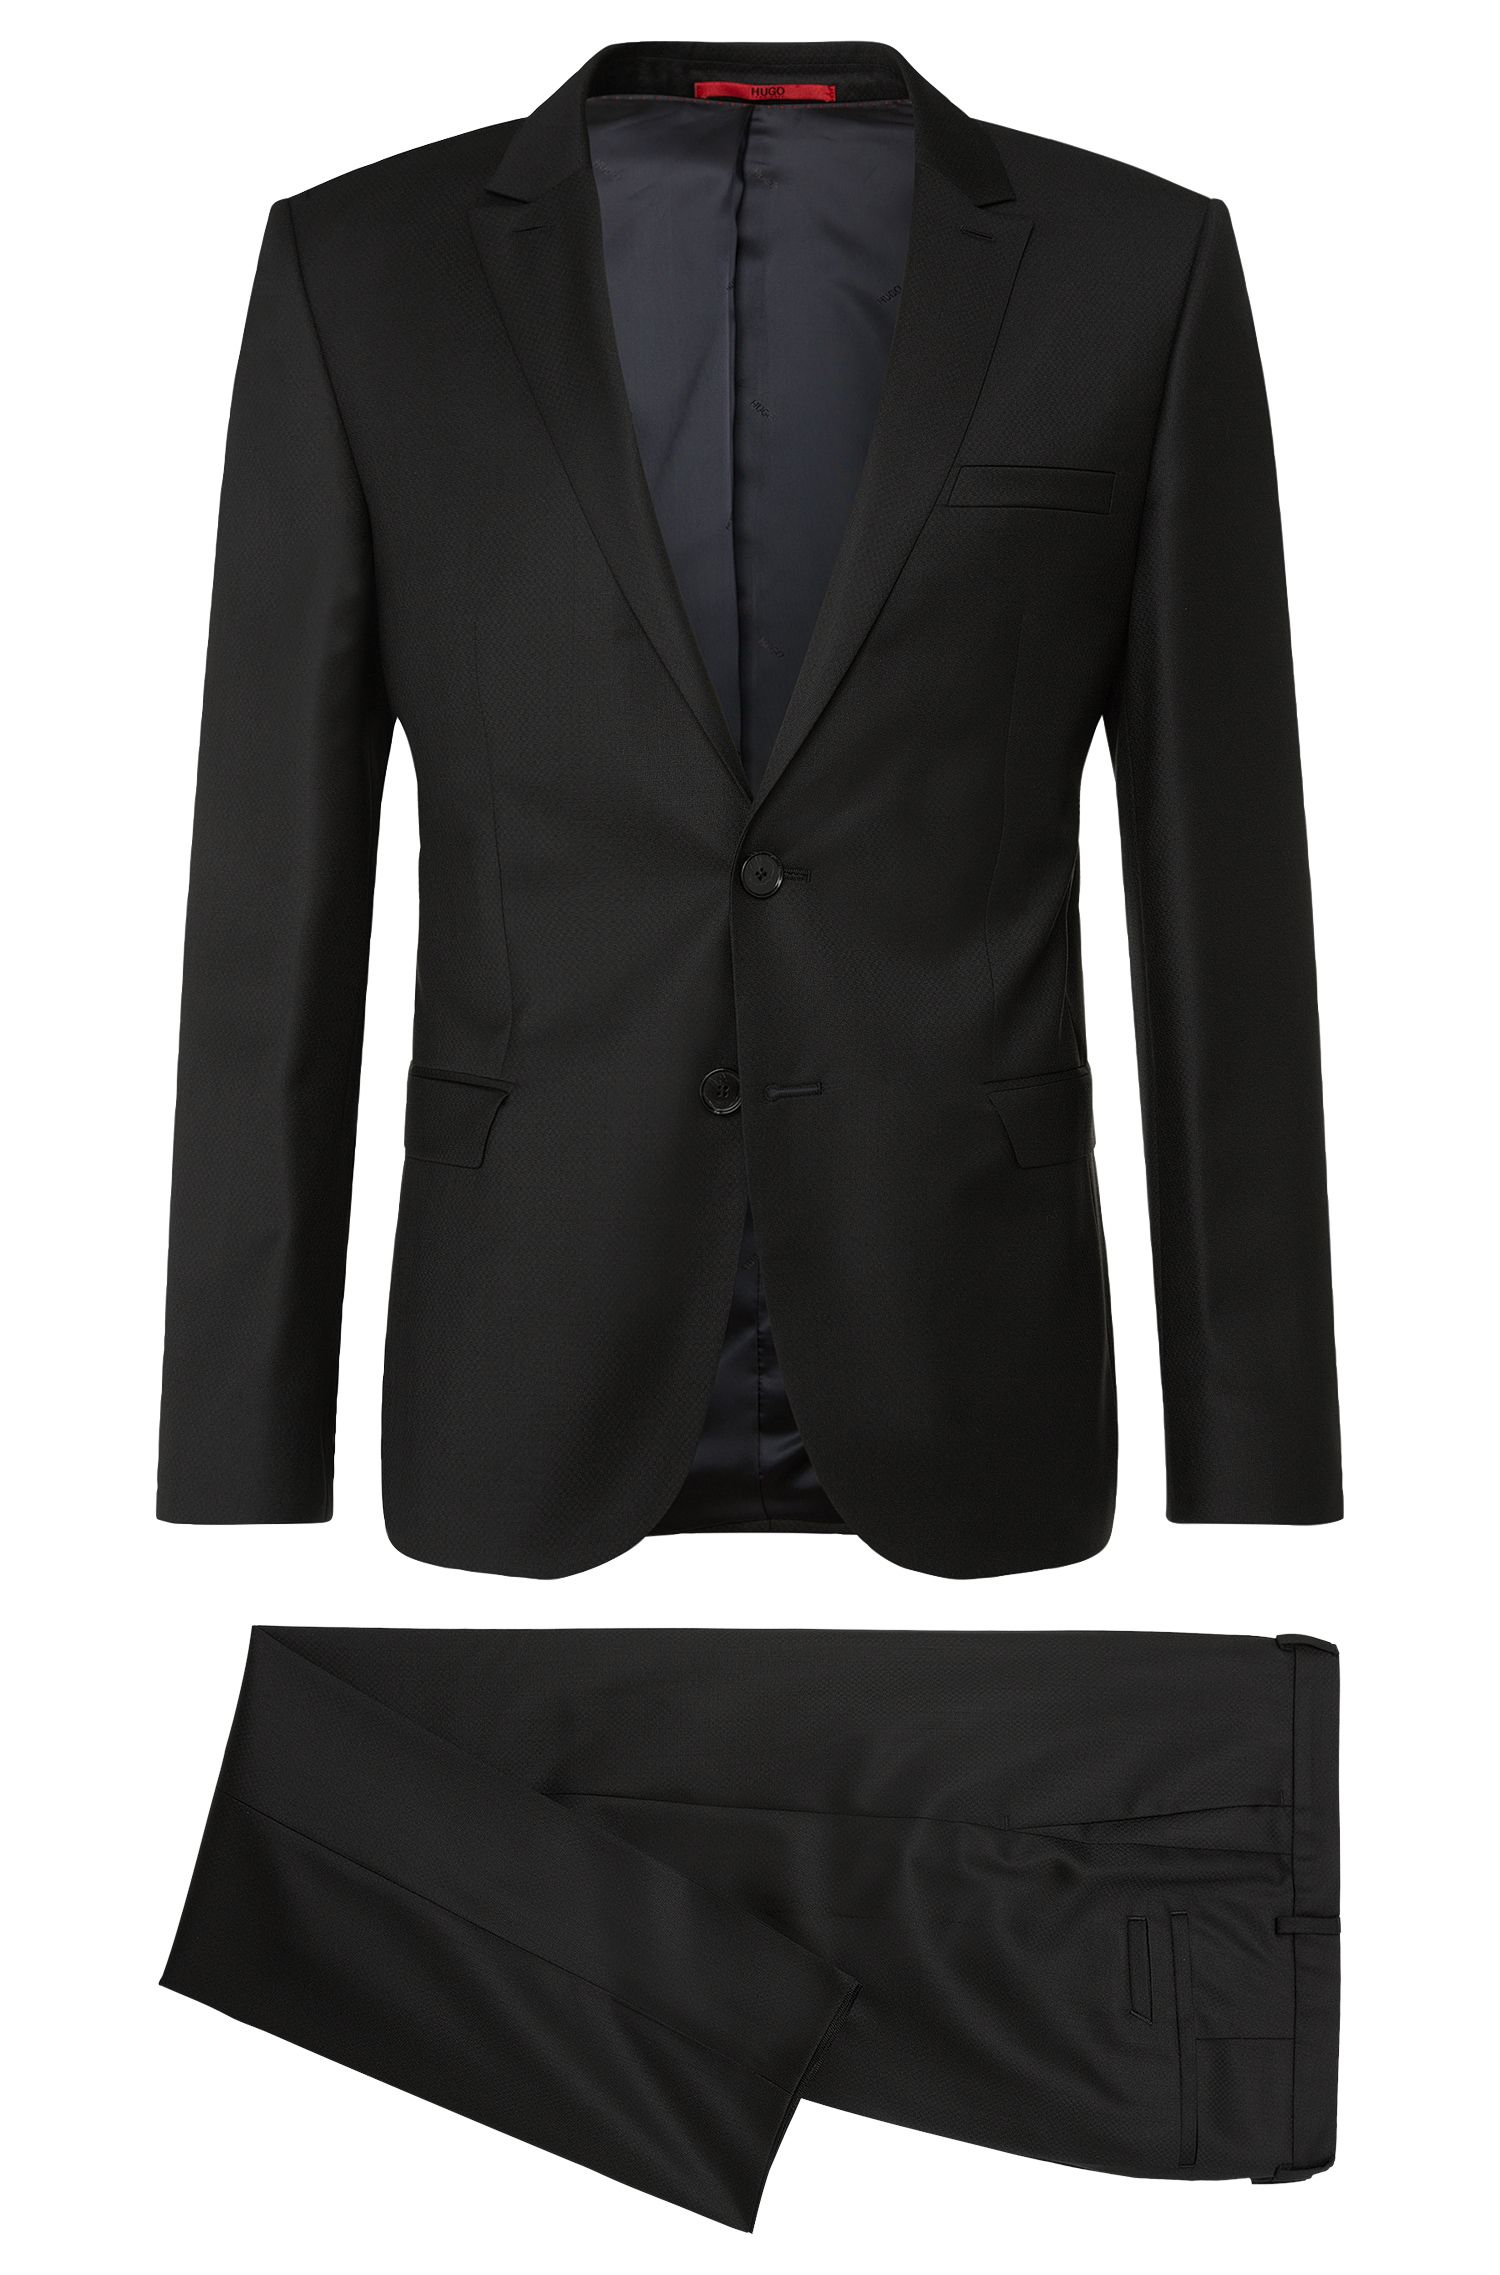 'Adan/Hallins' | Slim Fit, Virgin Wool-Silk Jacquard Suit